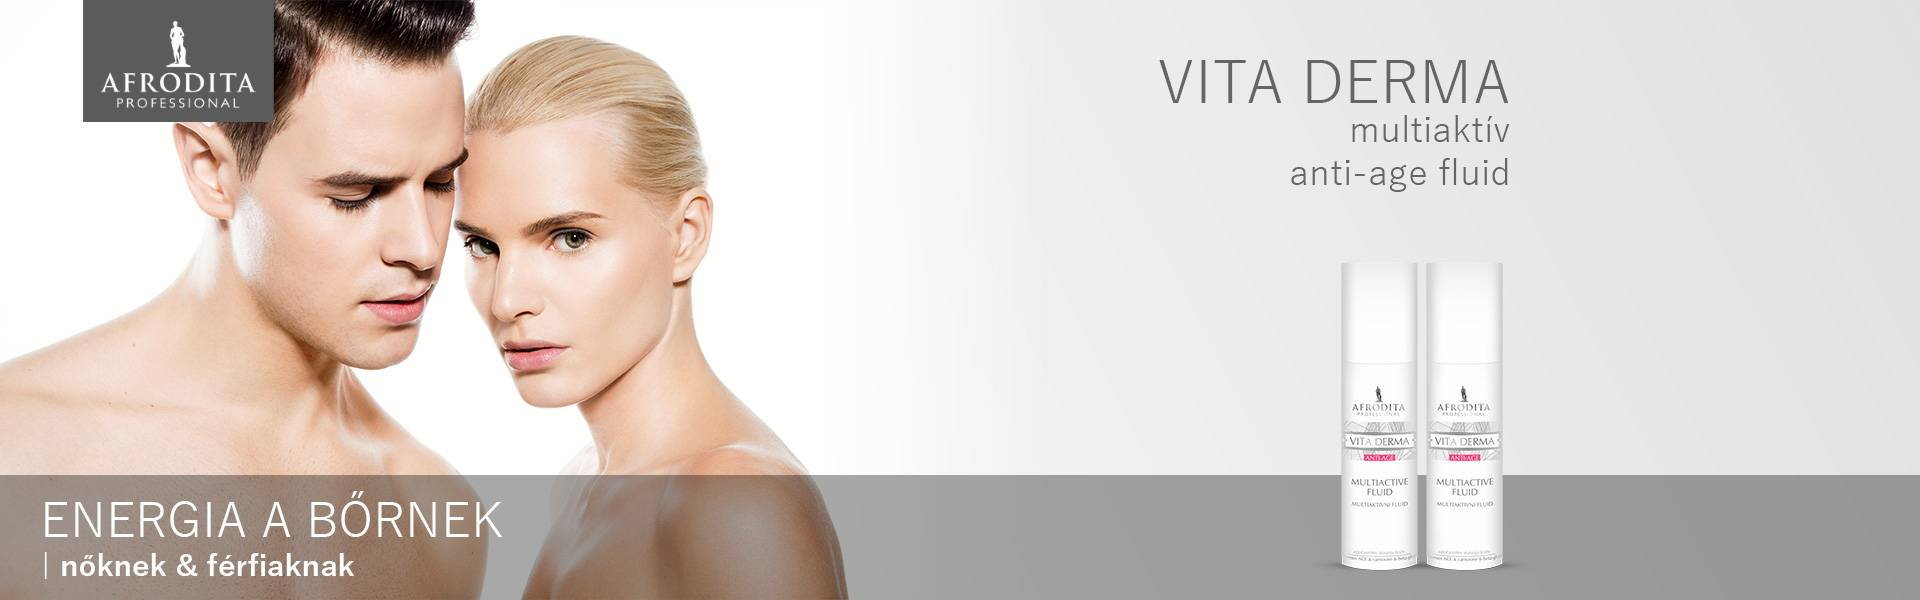 Vita Derma - multiaktív anti-age fluid